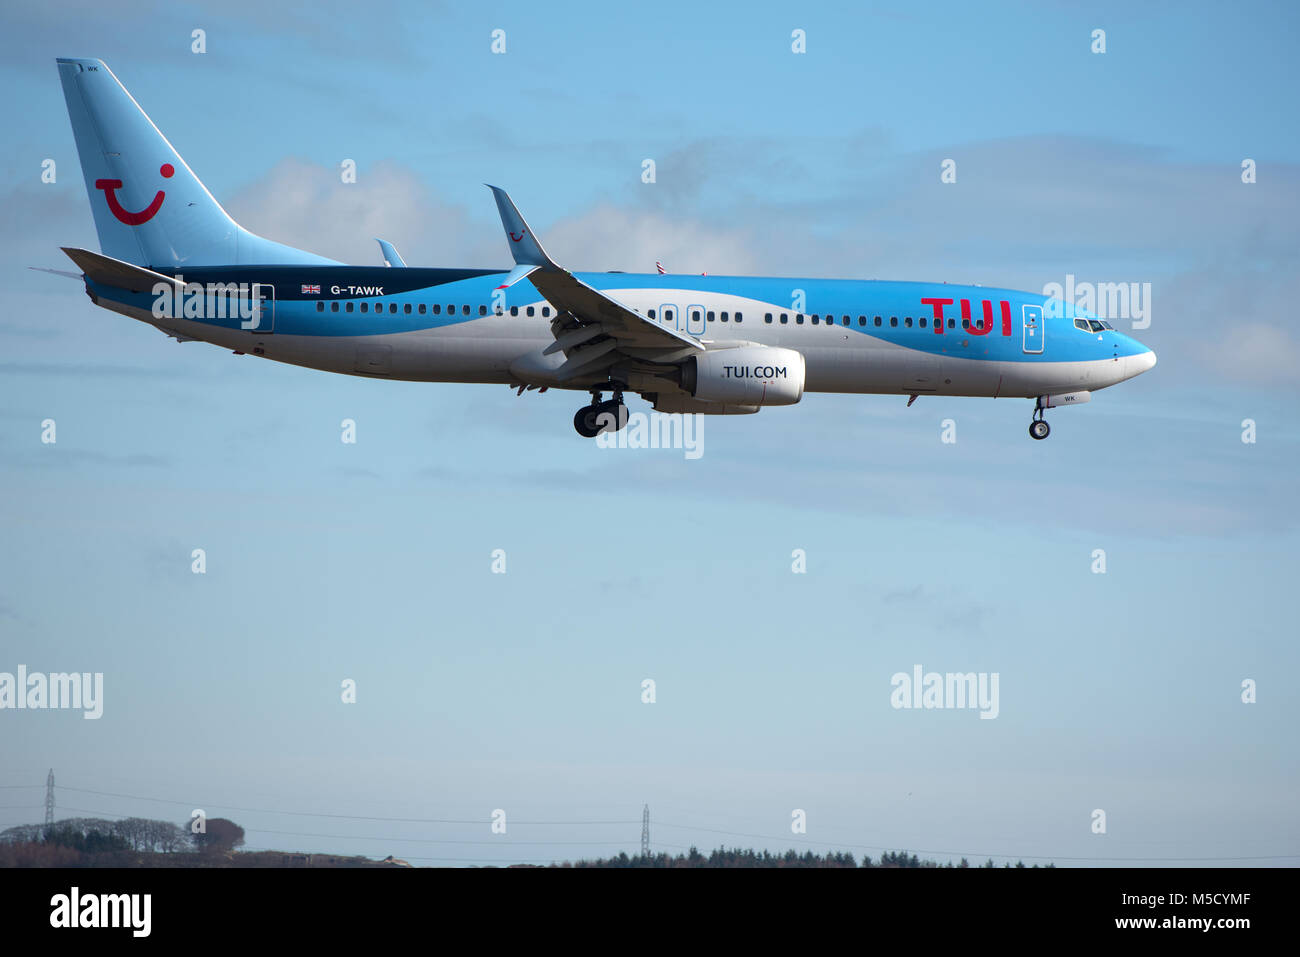 A Boeing 737-800 holiday flight returns to Aberdeen after the passengers had enjoyed a break in the Mediterranean sun. Stock Photo